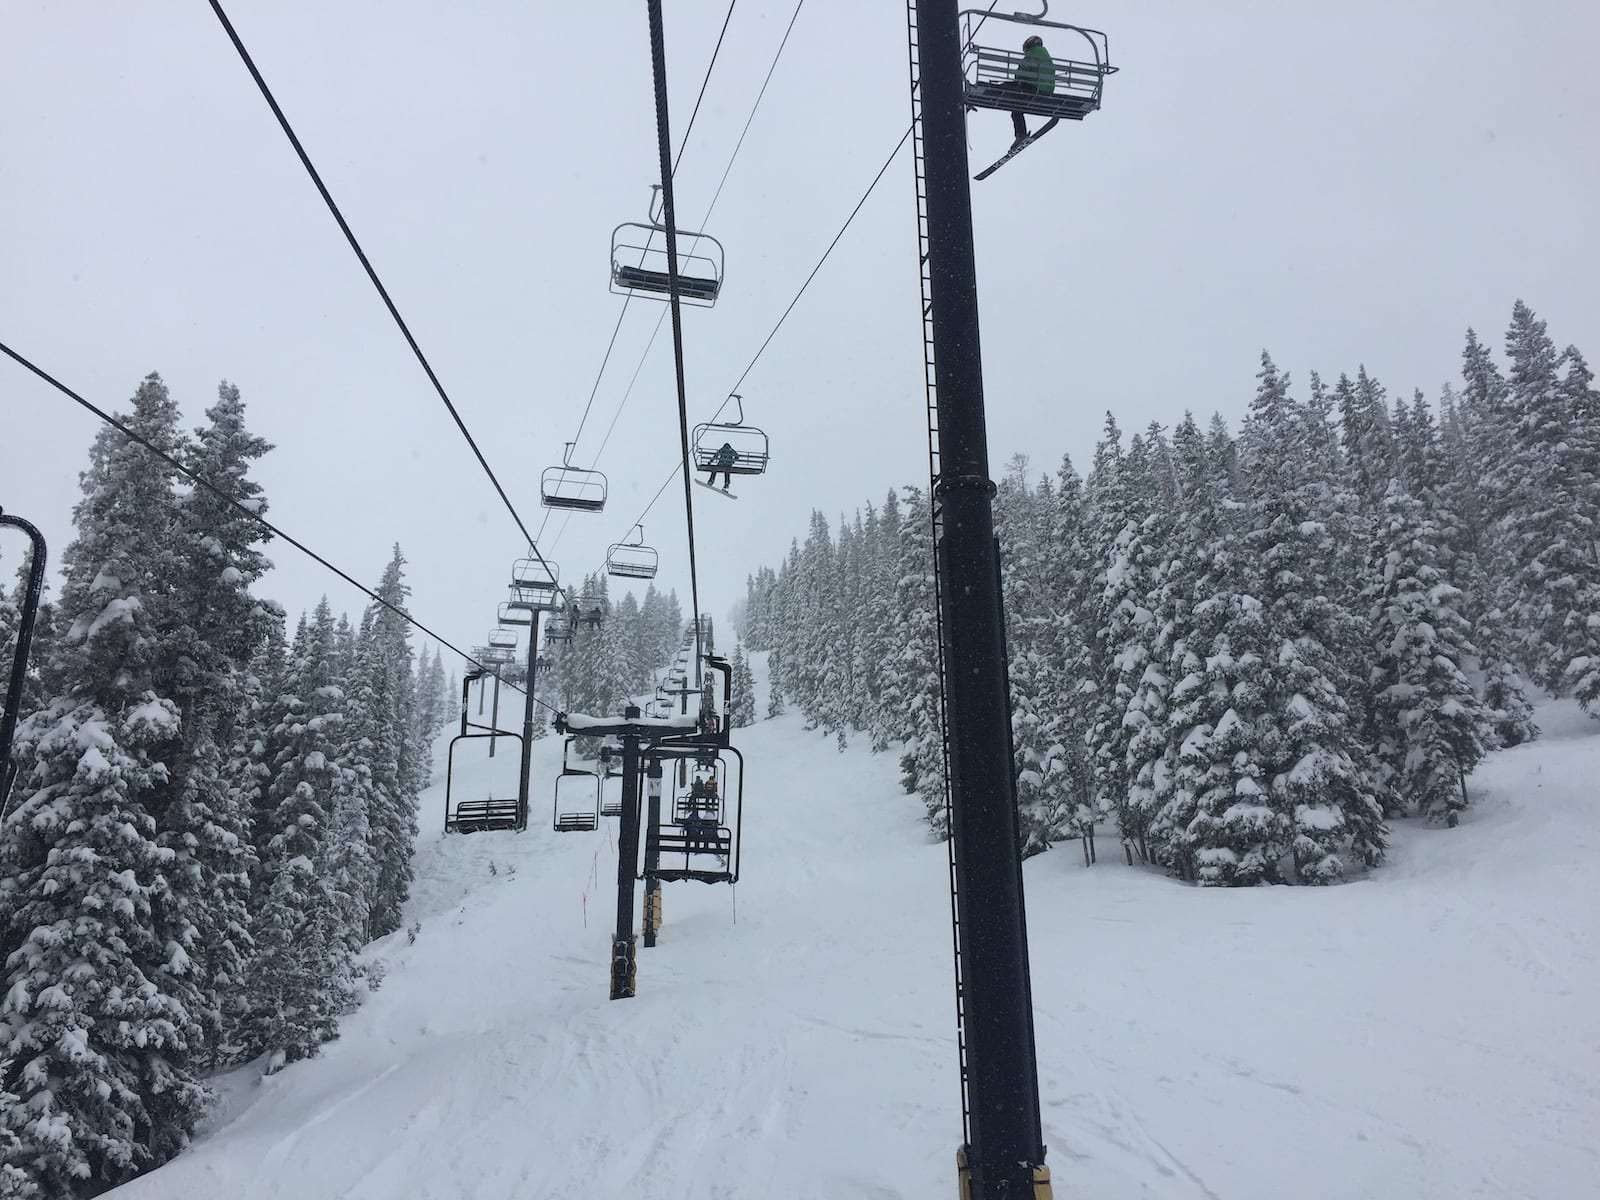 Monarch Mountain Ski Resort Chairlift Intersection